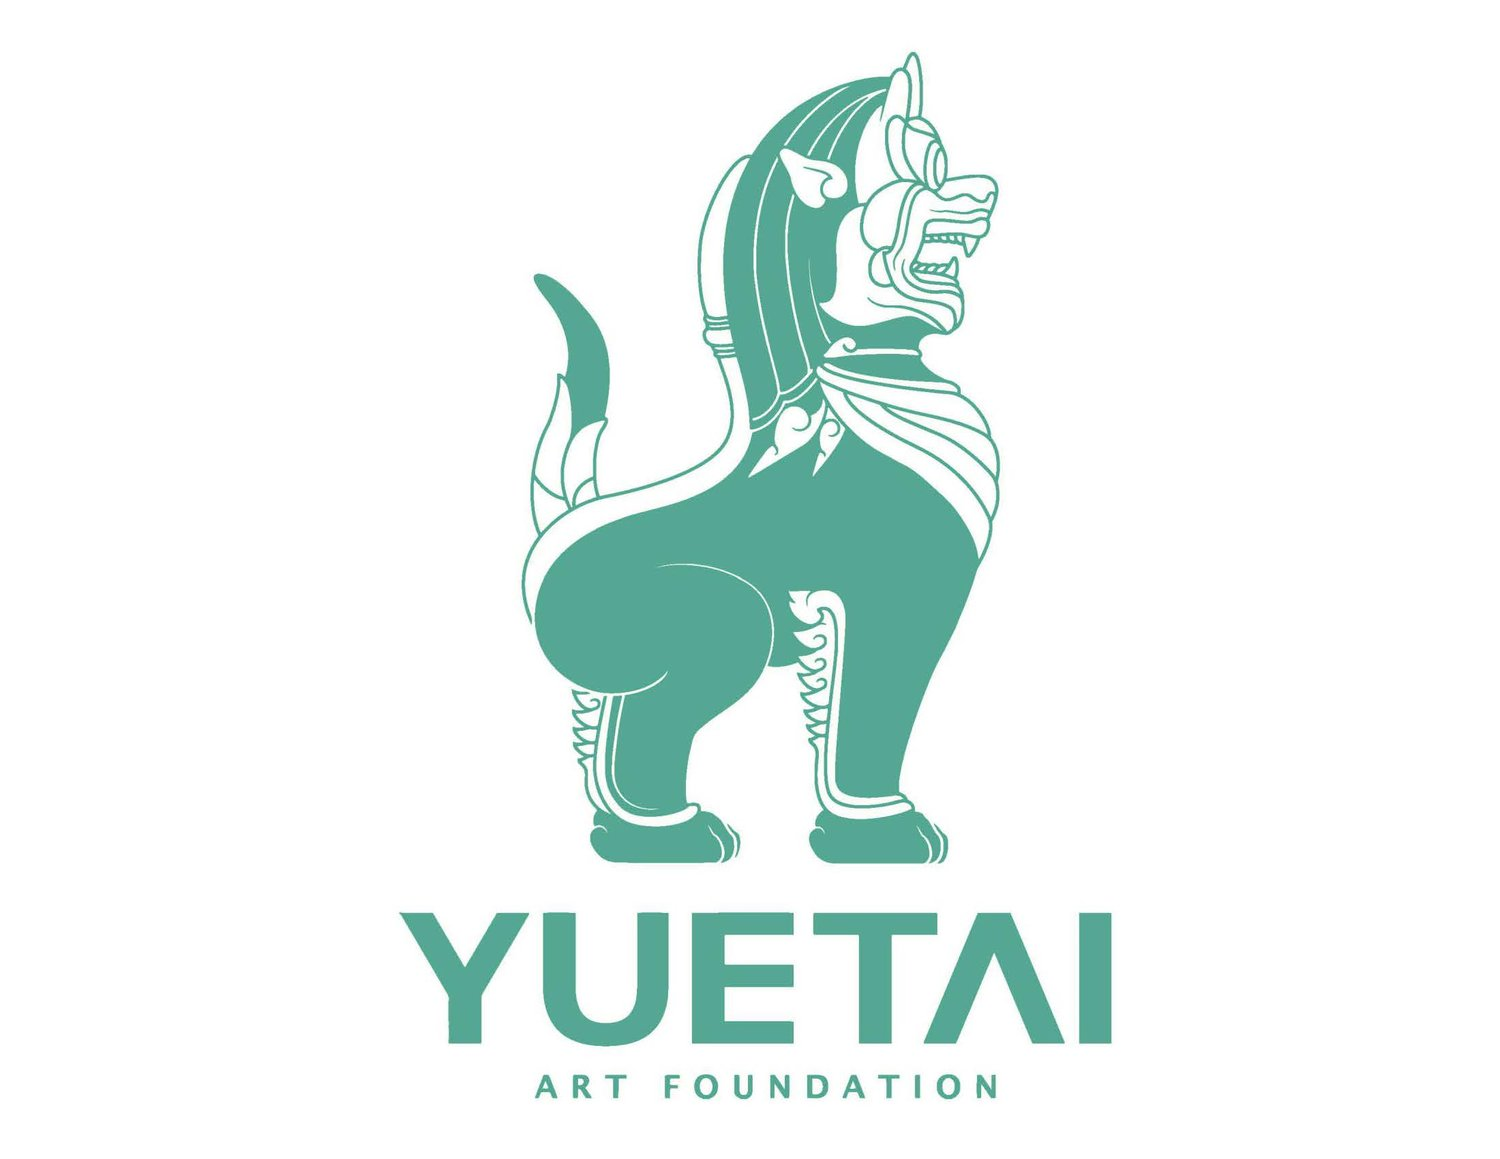 YUETAI ART FOUNDATION